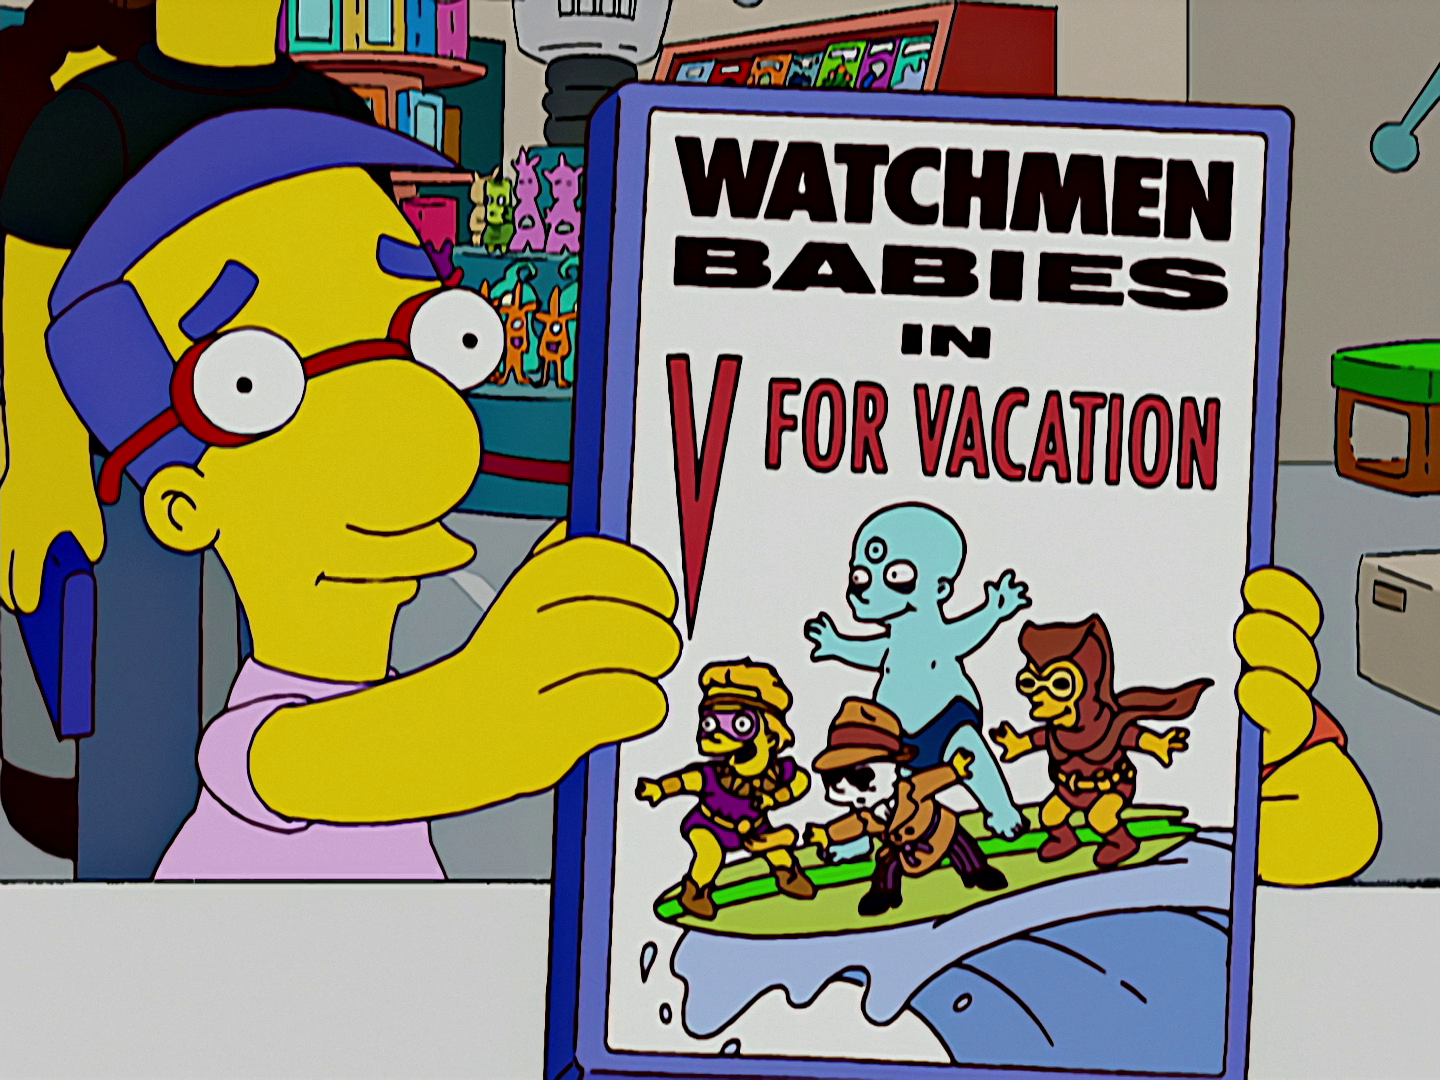 Watchmen_Babies_in_V_for_Vacation.png